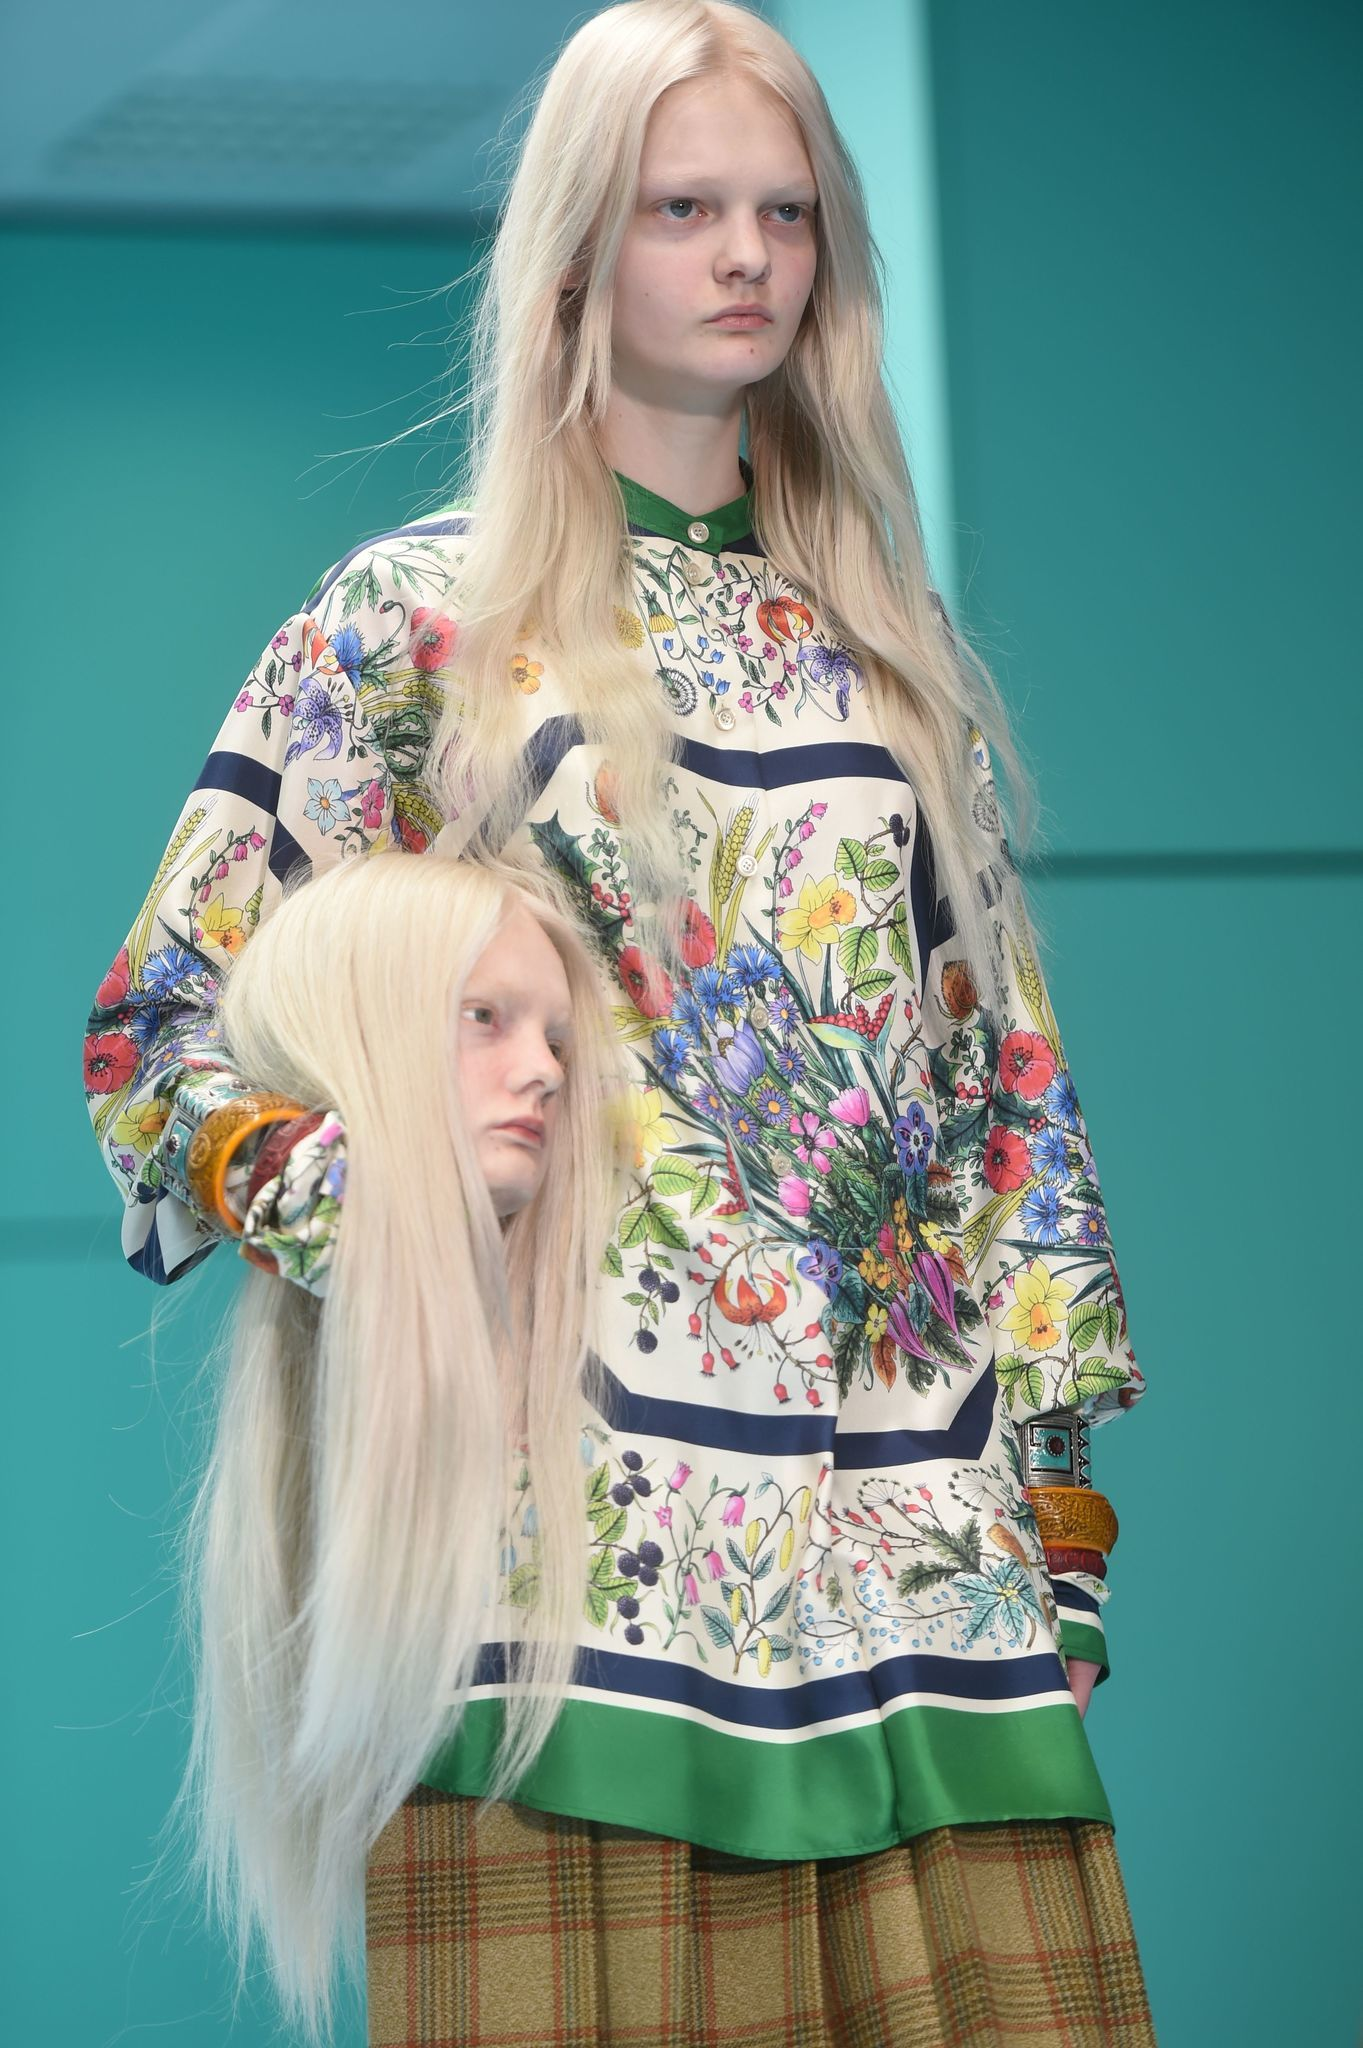 db209c433 Severed heads and baby dragons? Gucci gets weird at Milan Fashion Week -  Chicago Tribune